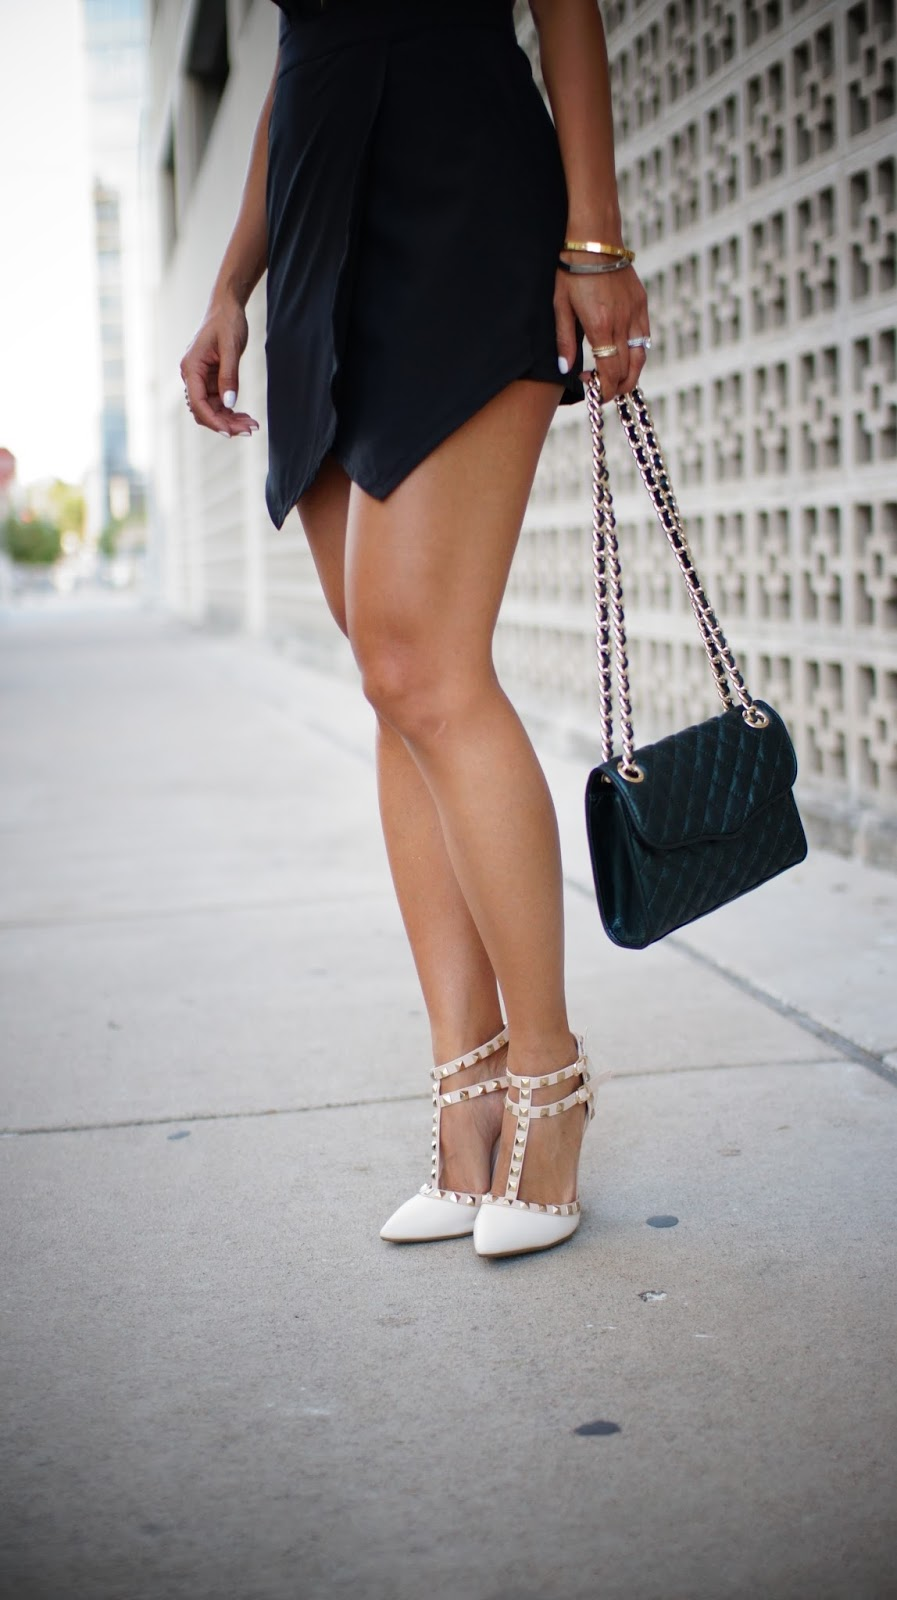 Backless Black Romper & Studded White Pumps outfit